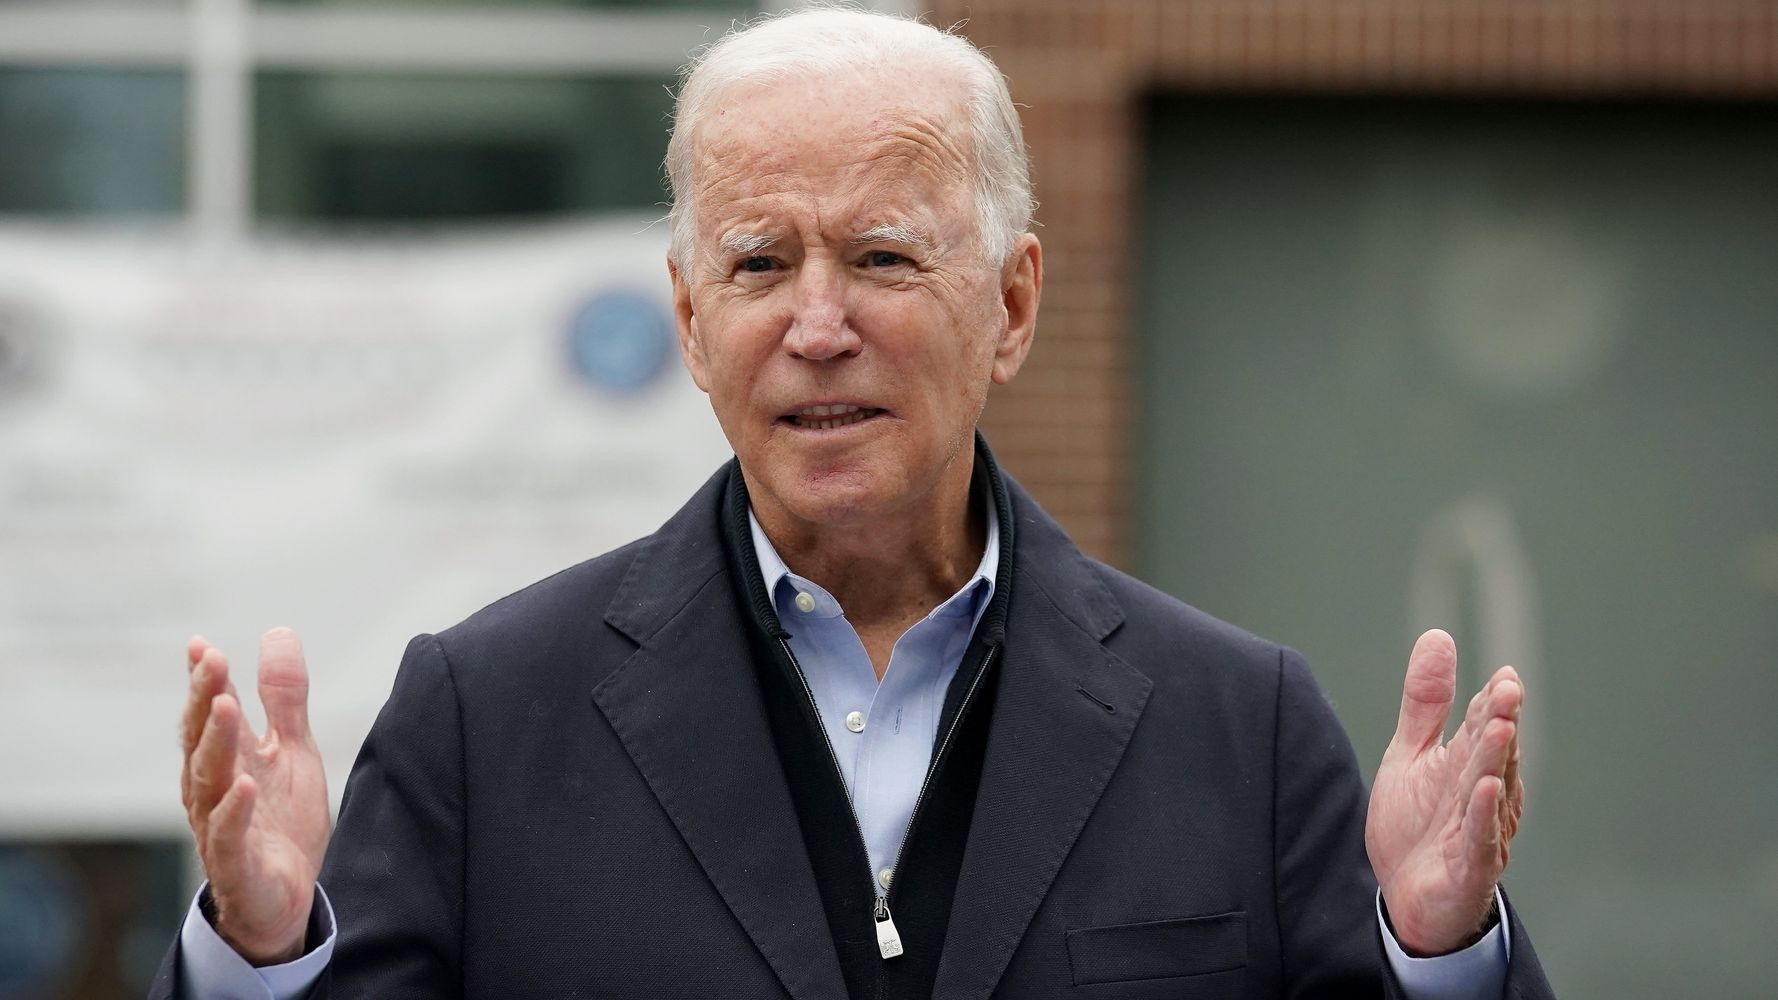 Biden Says He Opposes Term Limits On The Federal Judiciary